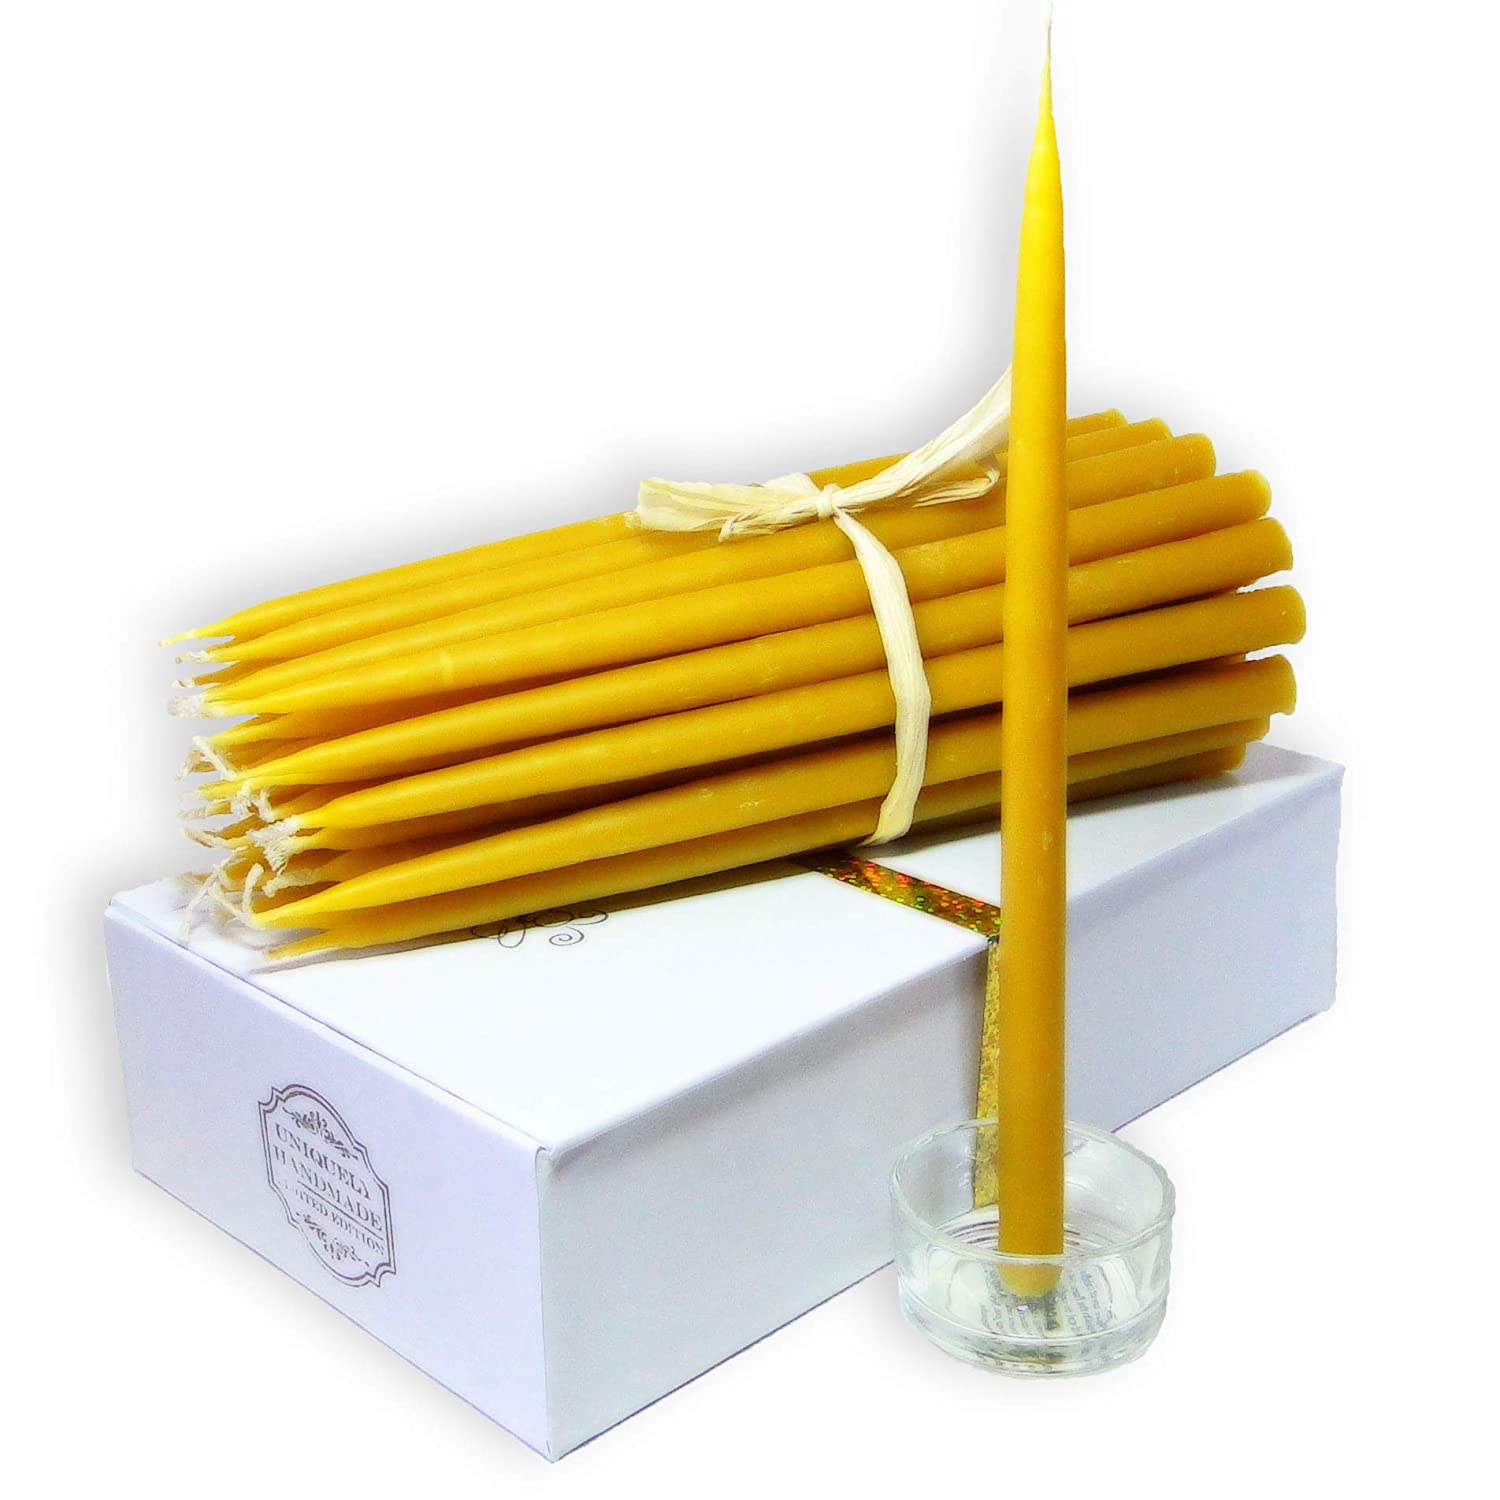 BCandle 100% Beeswax 2-hour Taper Candles Organic Hand Made - 7 1/2 Inch Tall, 3/8 Inch Diameter (Pack of 36)